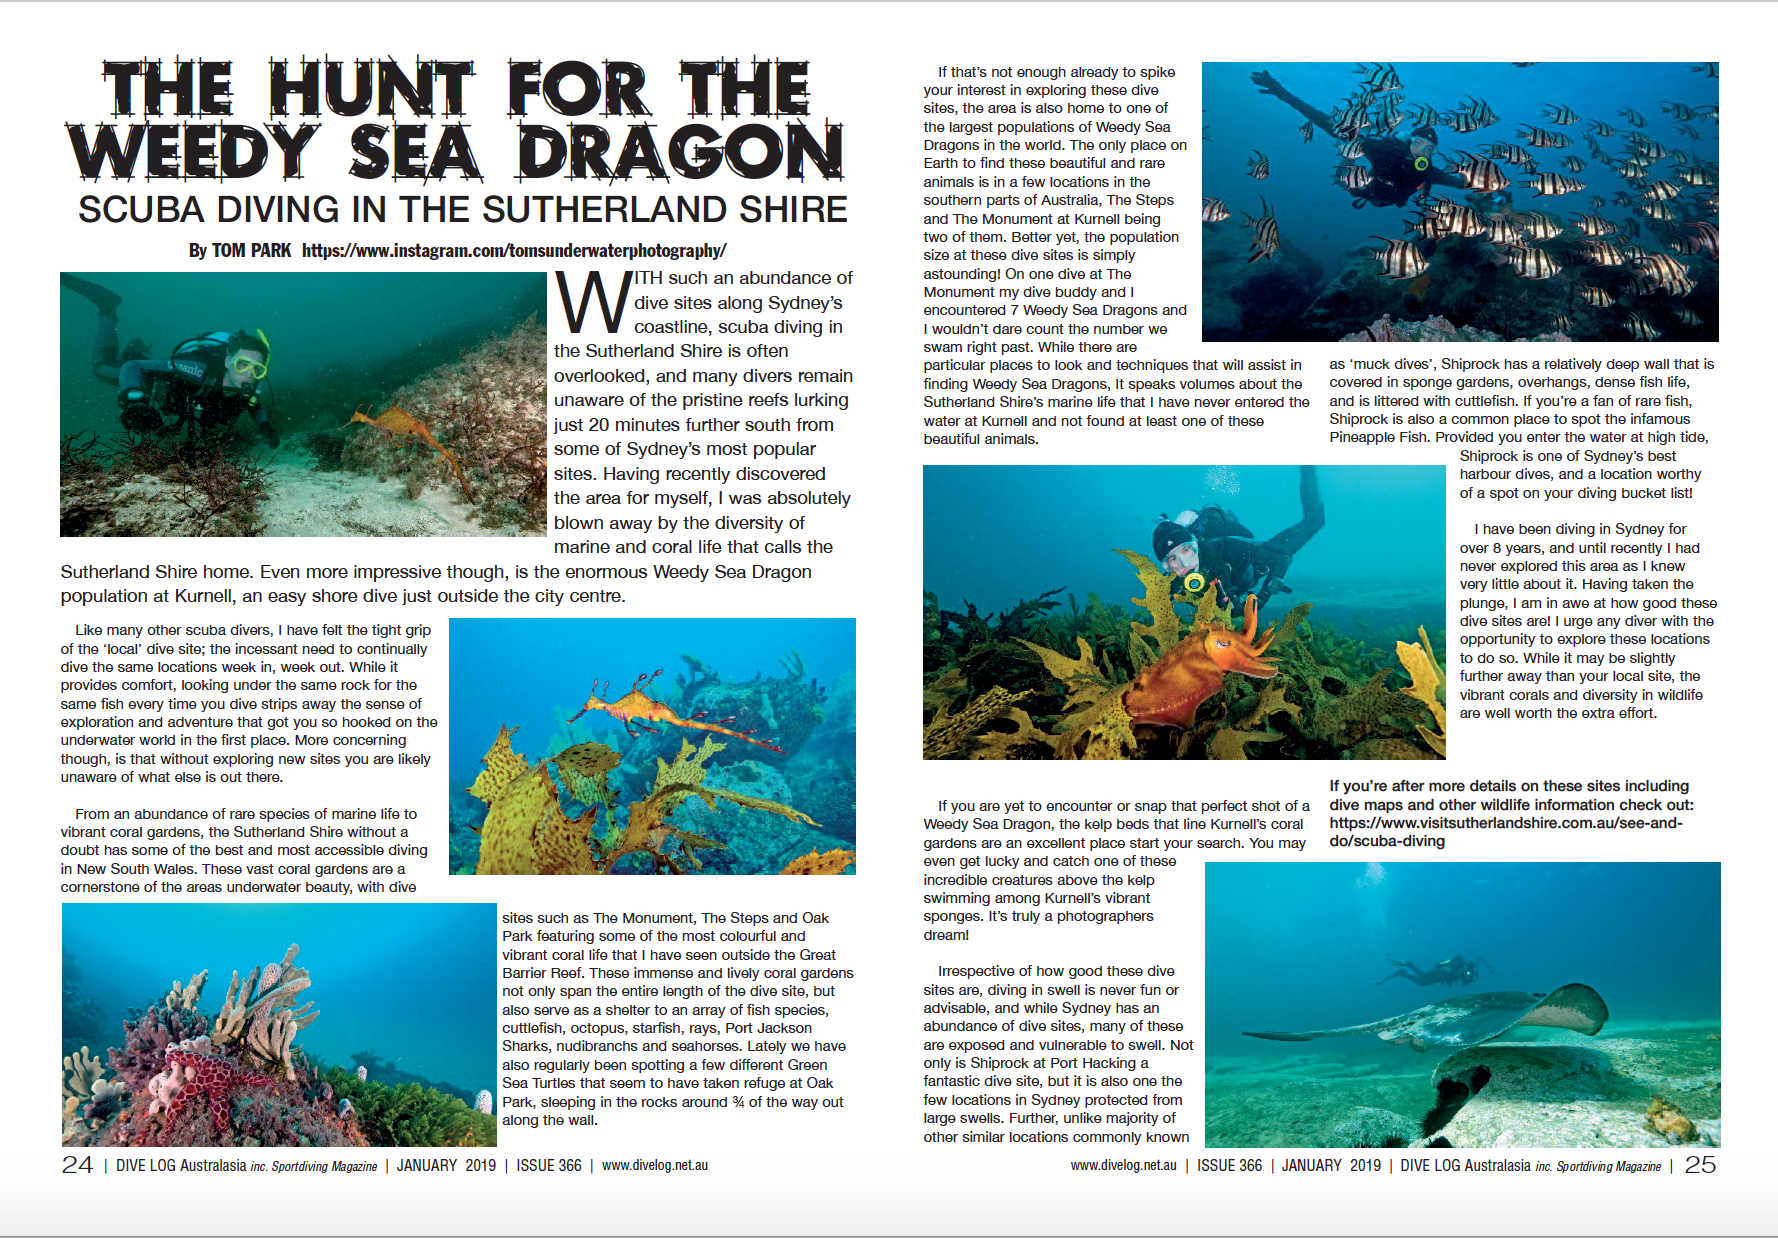 Publication in Dive Log Australasia Magazine - January 2019